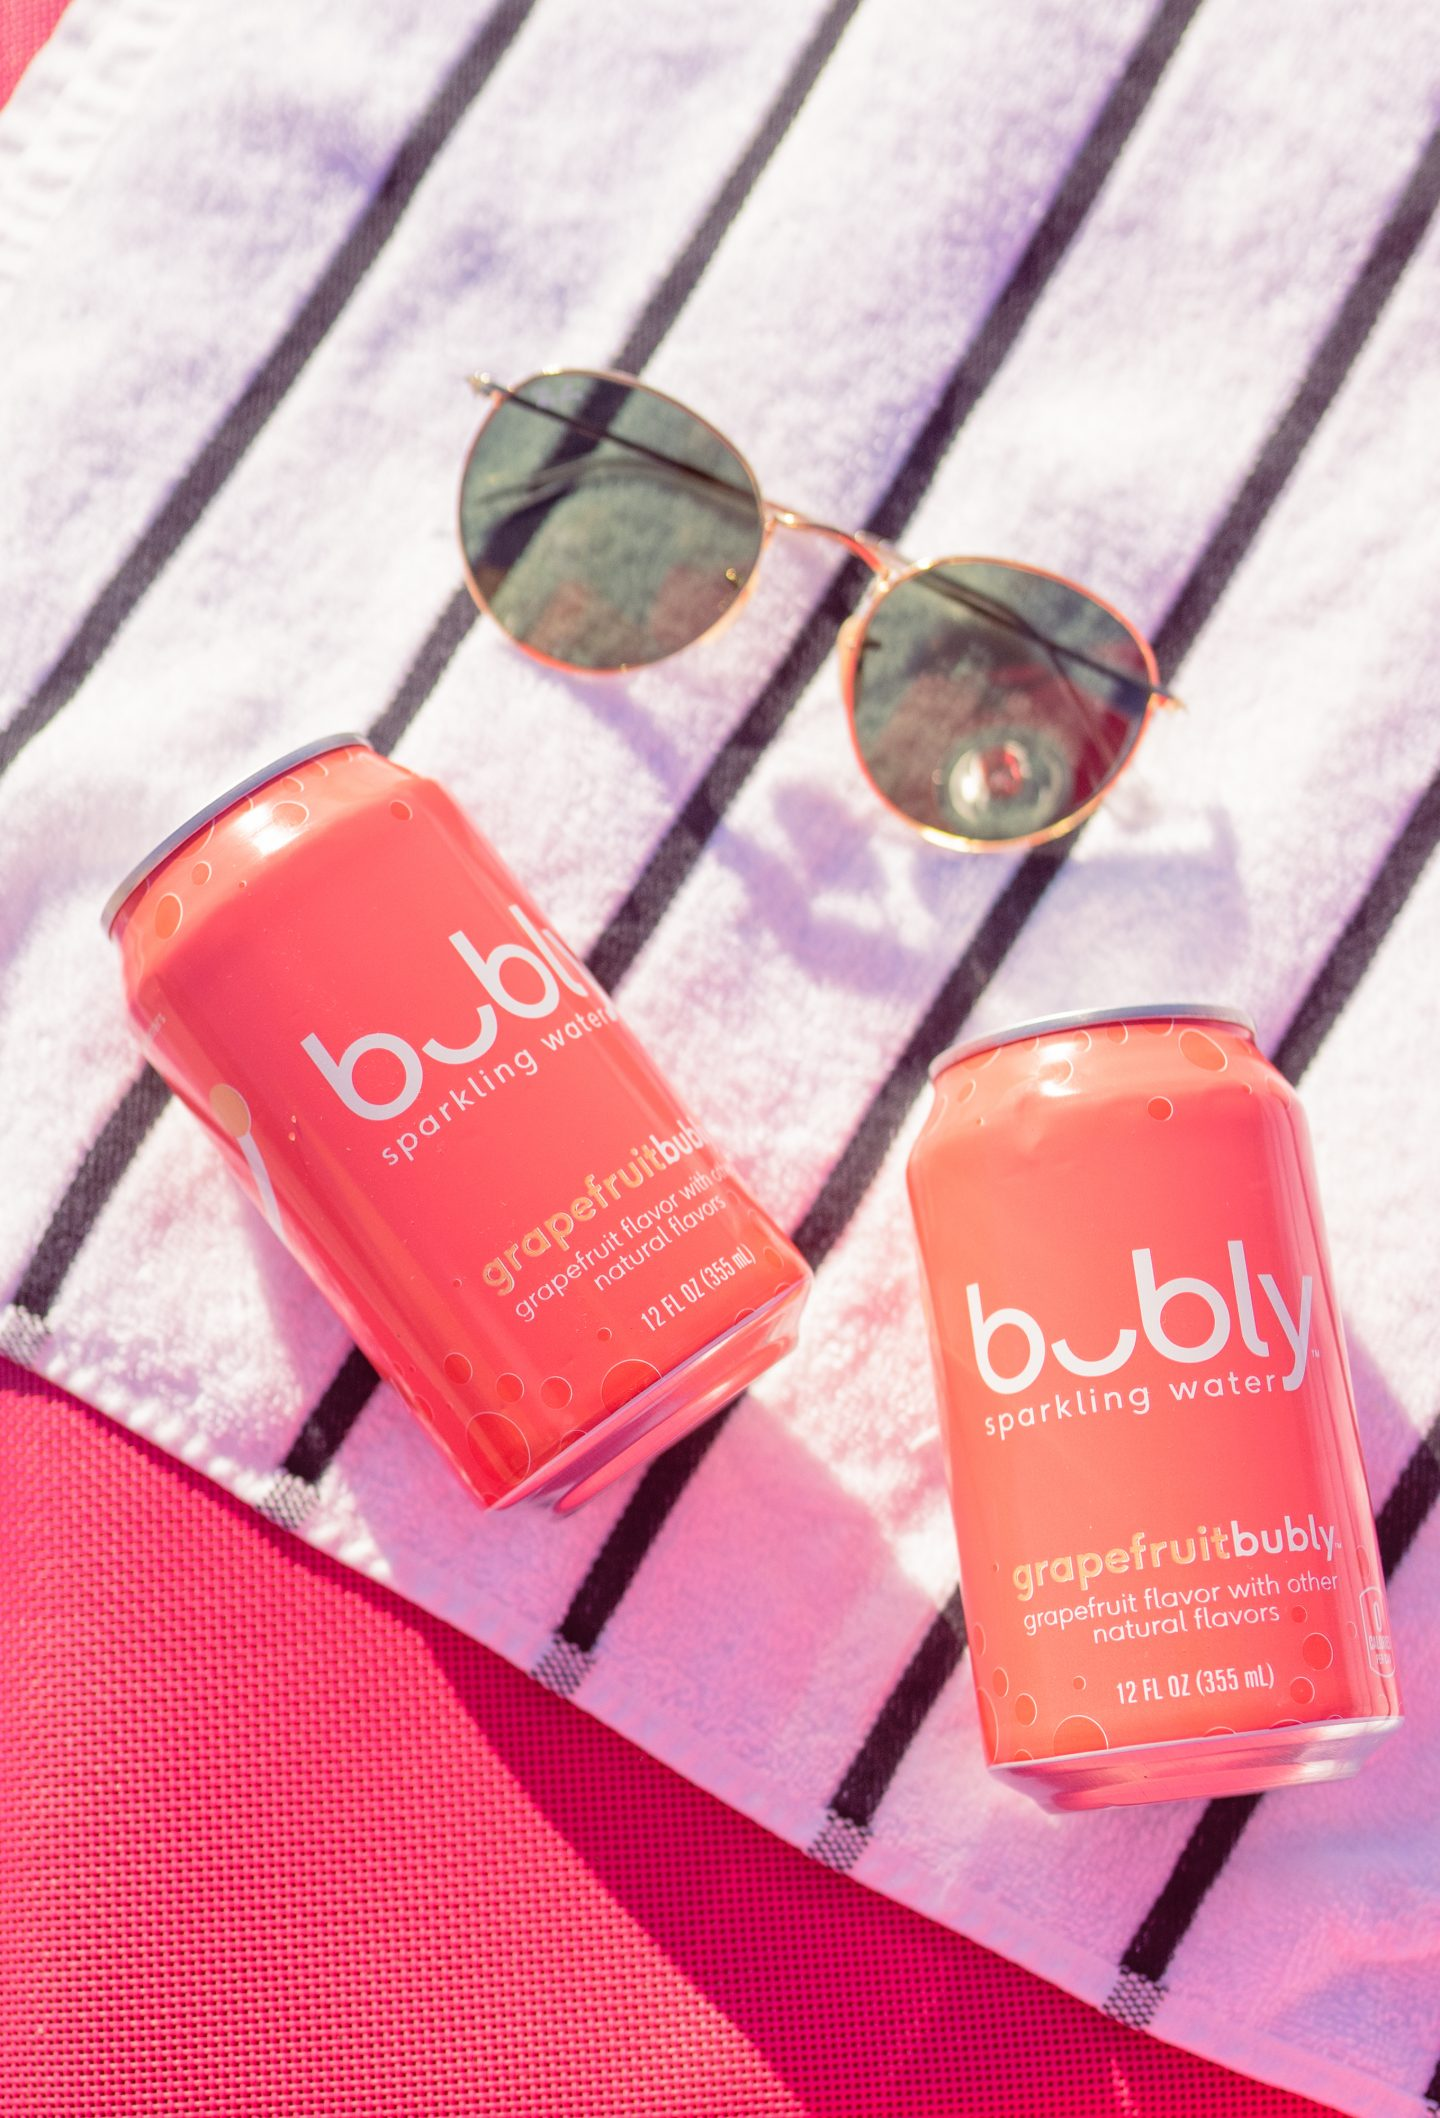 Bubly sparkling water South Beach, Miami on ashleybrookedesigns.com